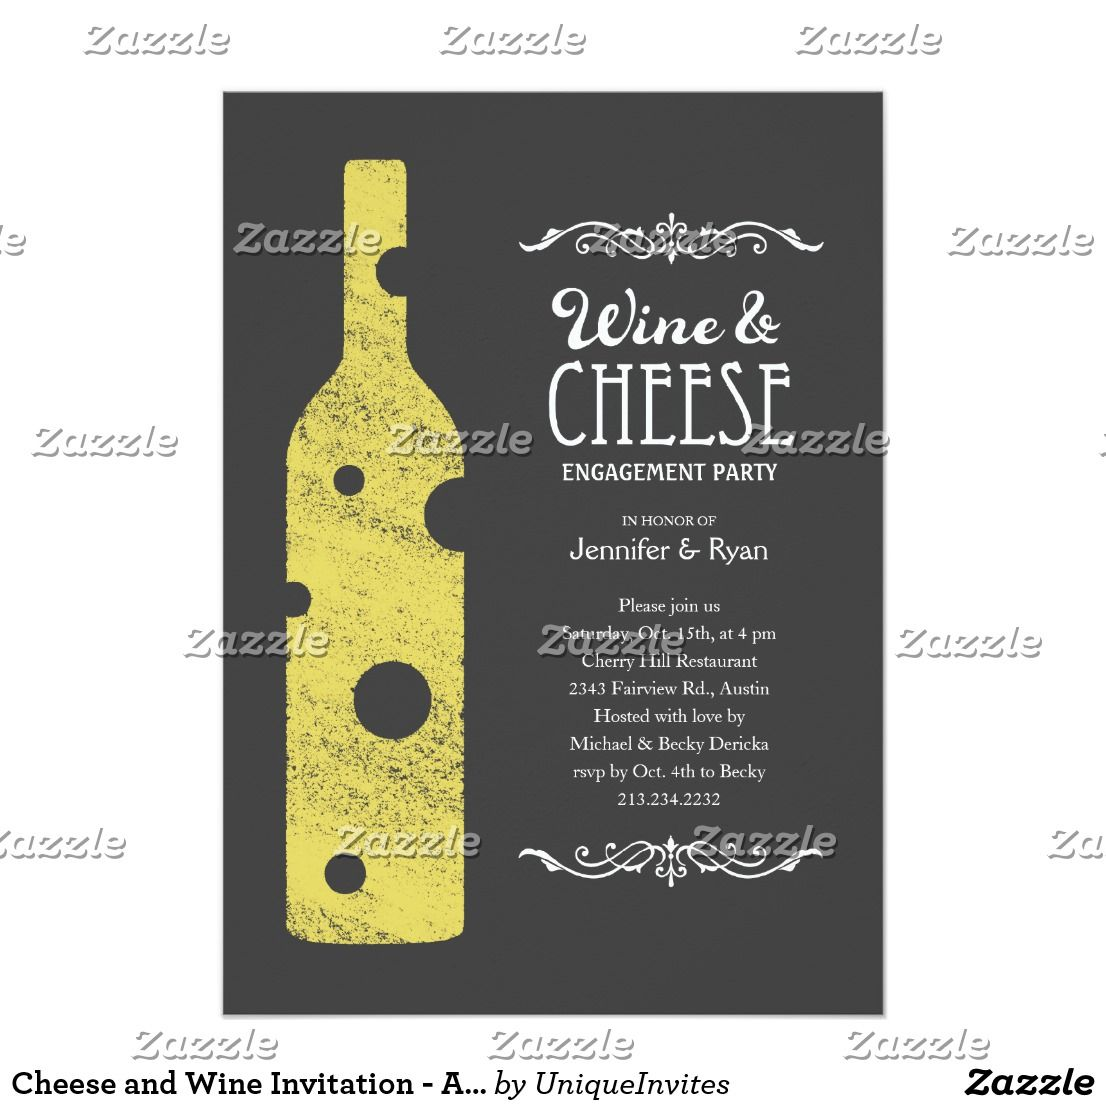 Cheese and Wine Invitation - Alternate wording | Favors and Weddings